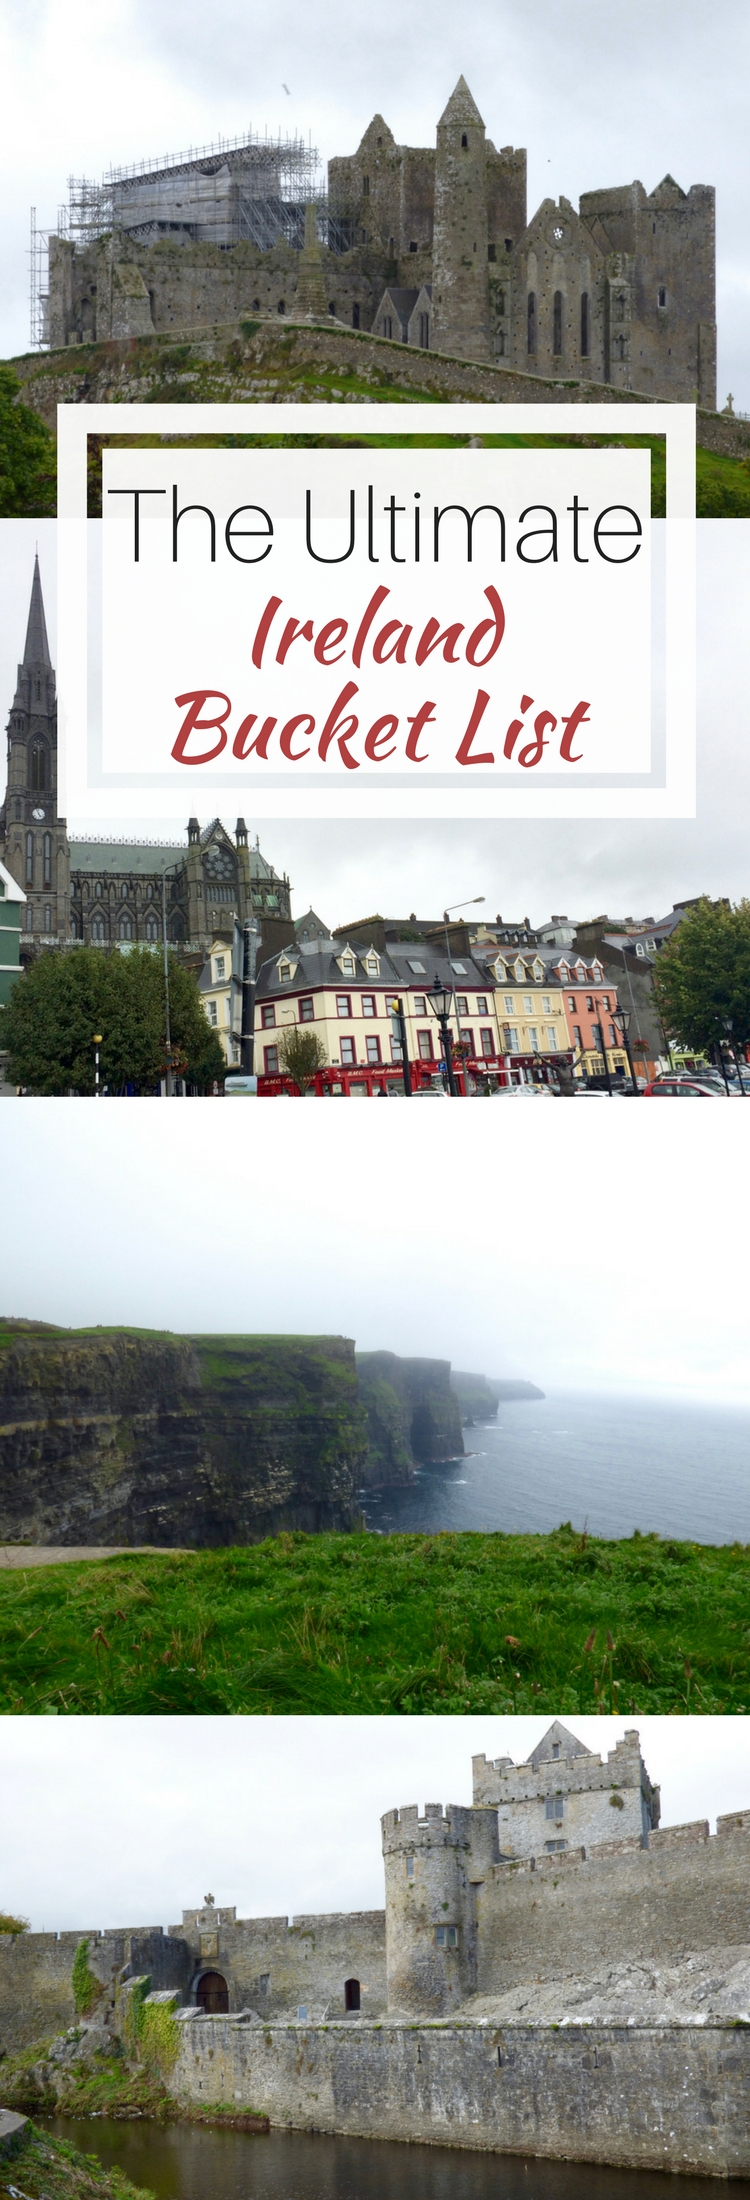 Filled with ancient history, rolling green hills, folklore, amazing drinks and food, make sure to miss nothing with this ultimate bucket list for Ireland. Read about all the cities, castles, experiences you should have if you're visiting the Emerald Isle.